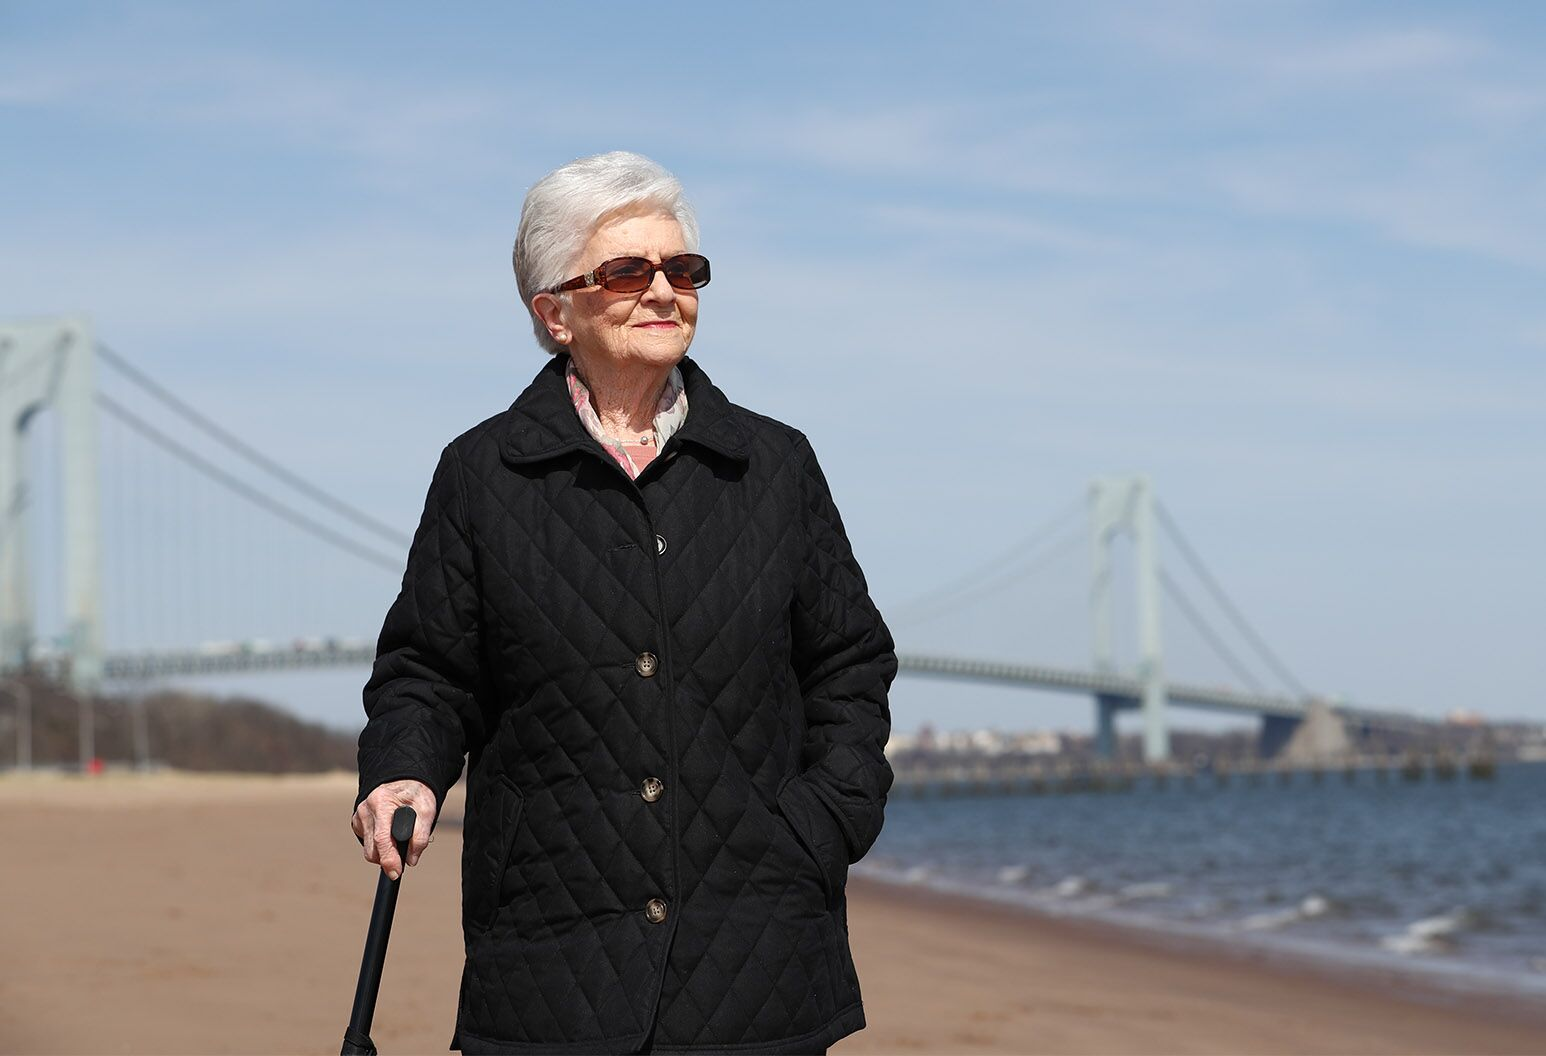 Woman in her 90s standing in front of a long suspension bridge.